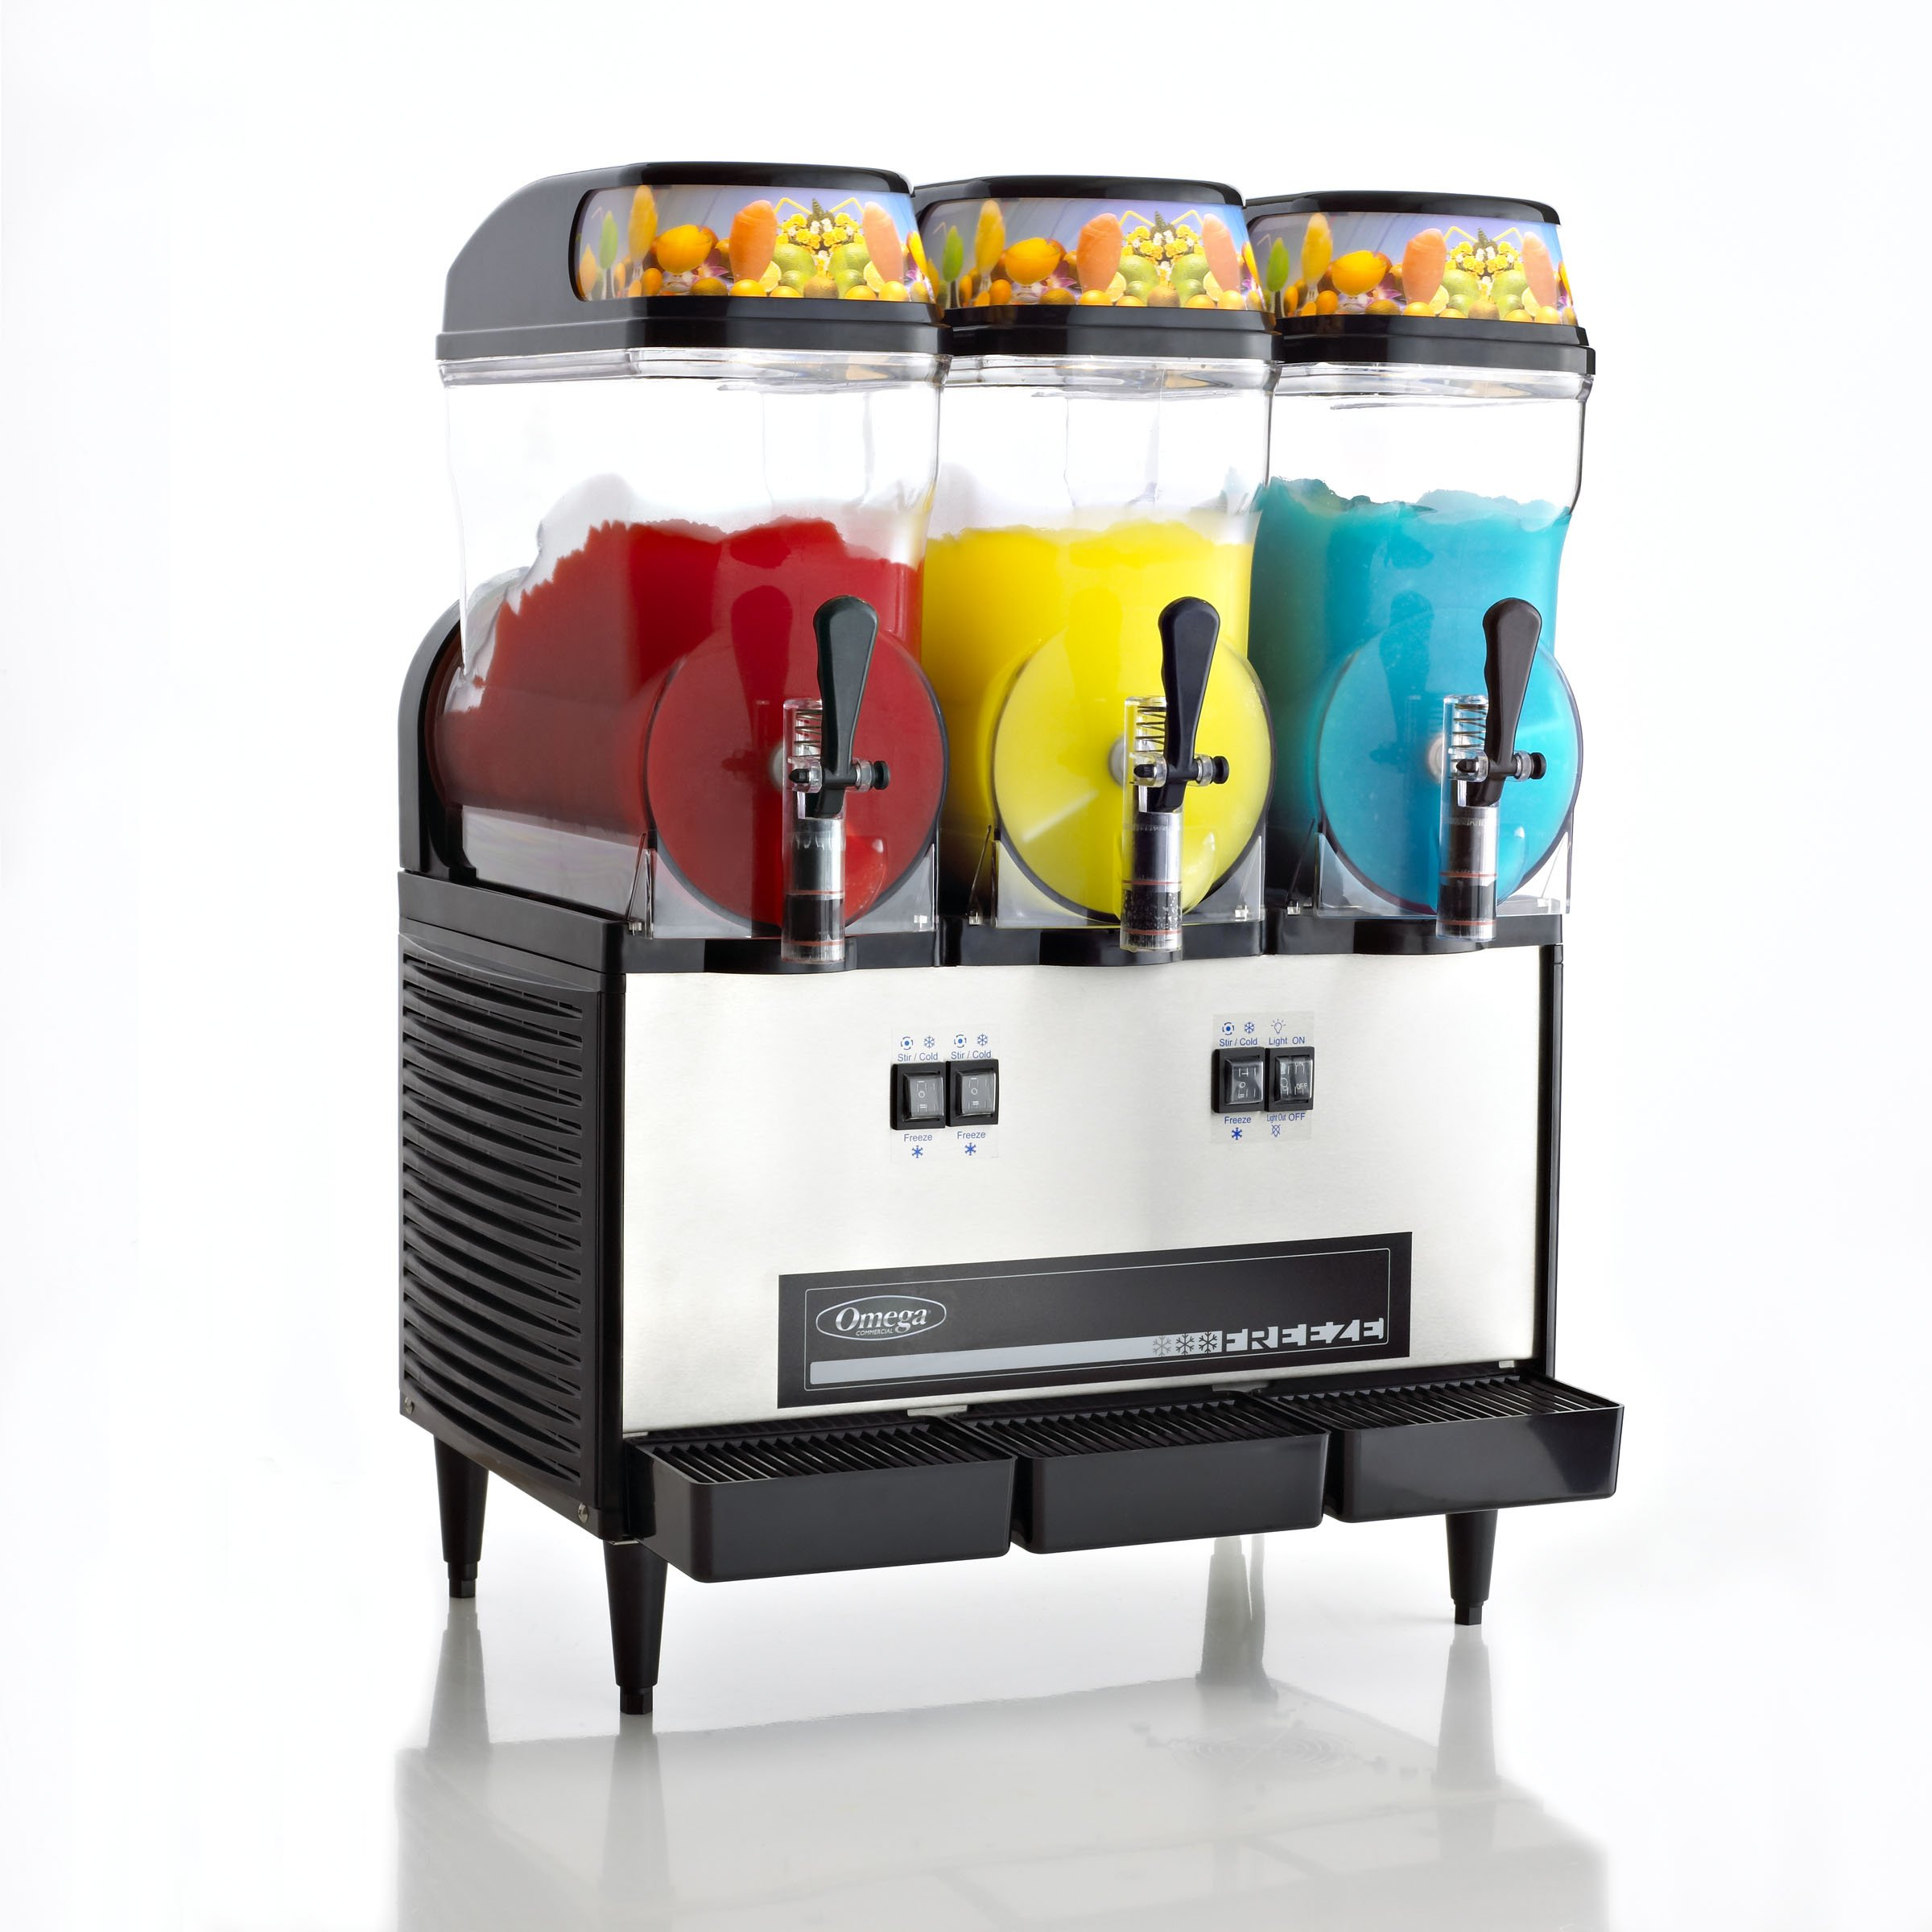 Galleon omega ofs30 commercial 1 2 horsepower 980 watt granita machine with 3 3 gallon bowls for Kitchen set toys r us philippines